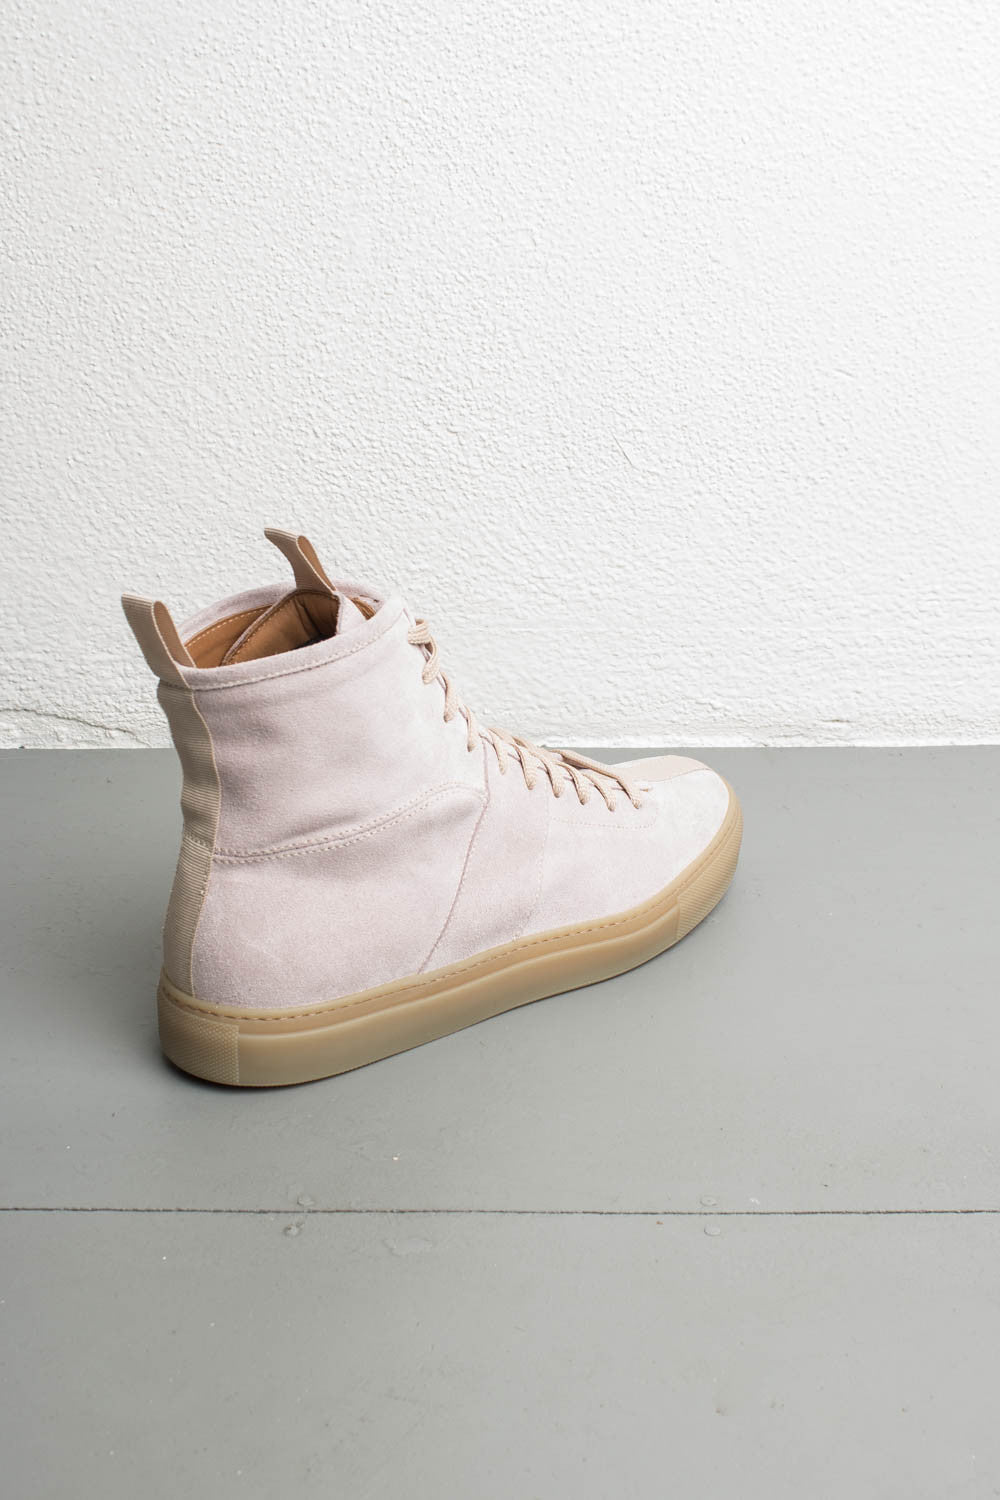 leather high top sneakers by daniel patrick